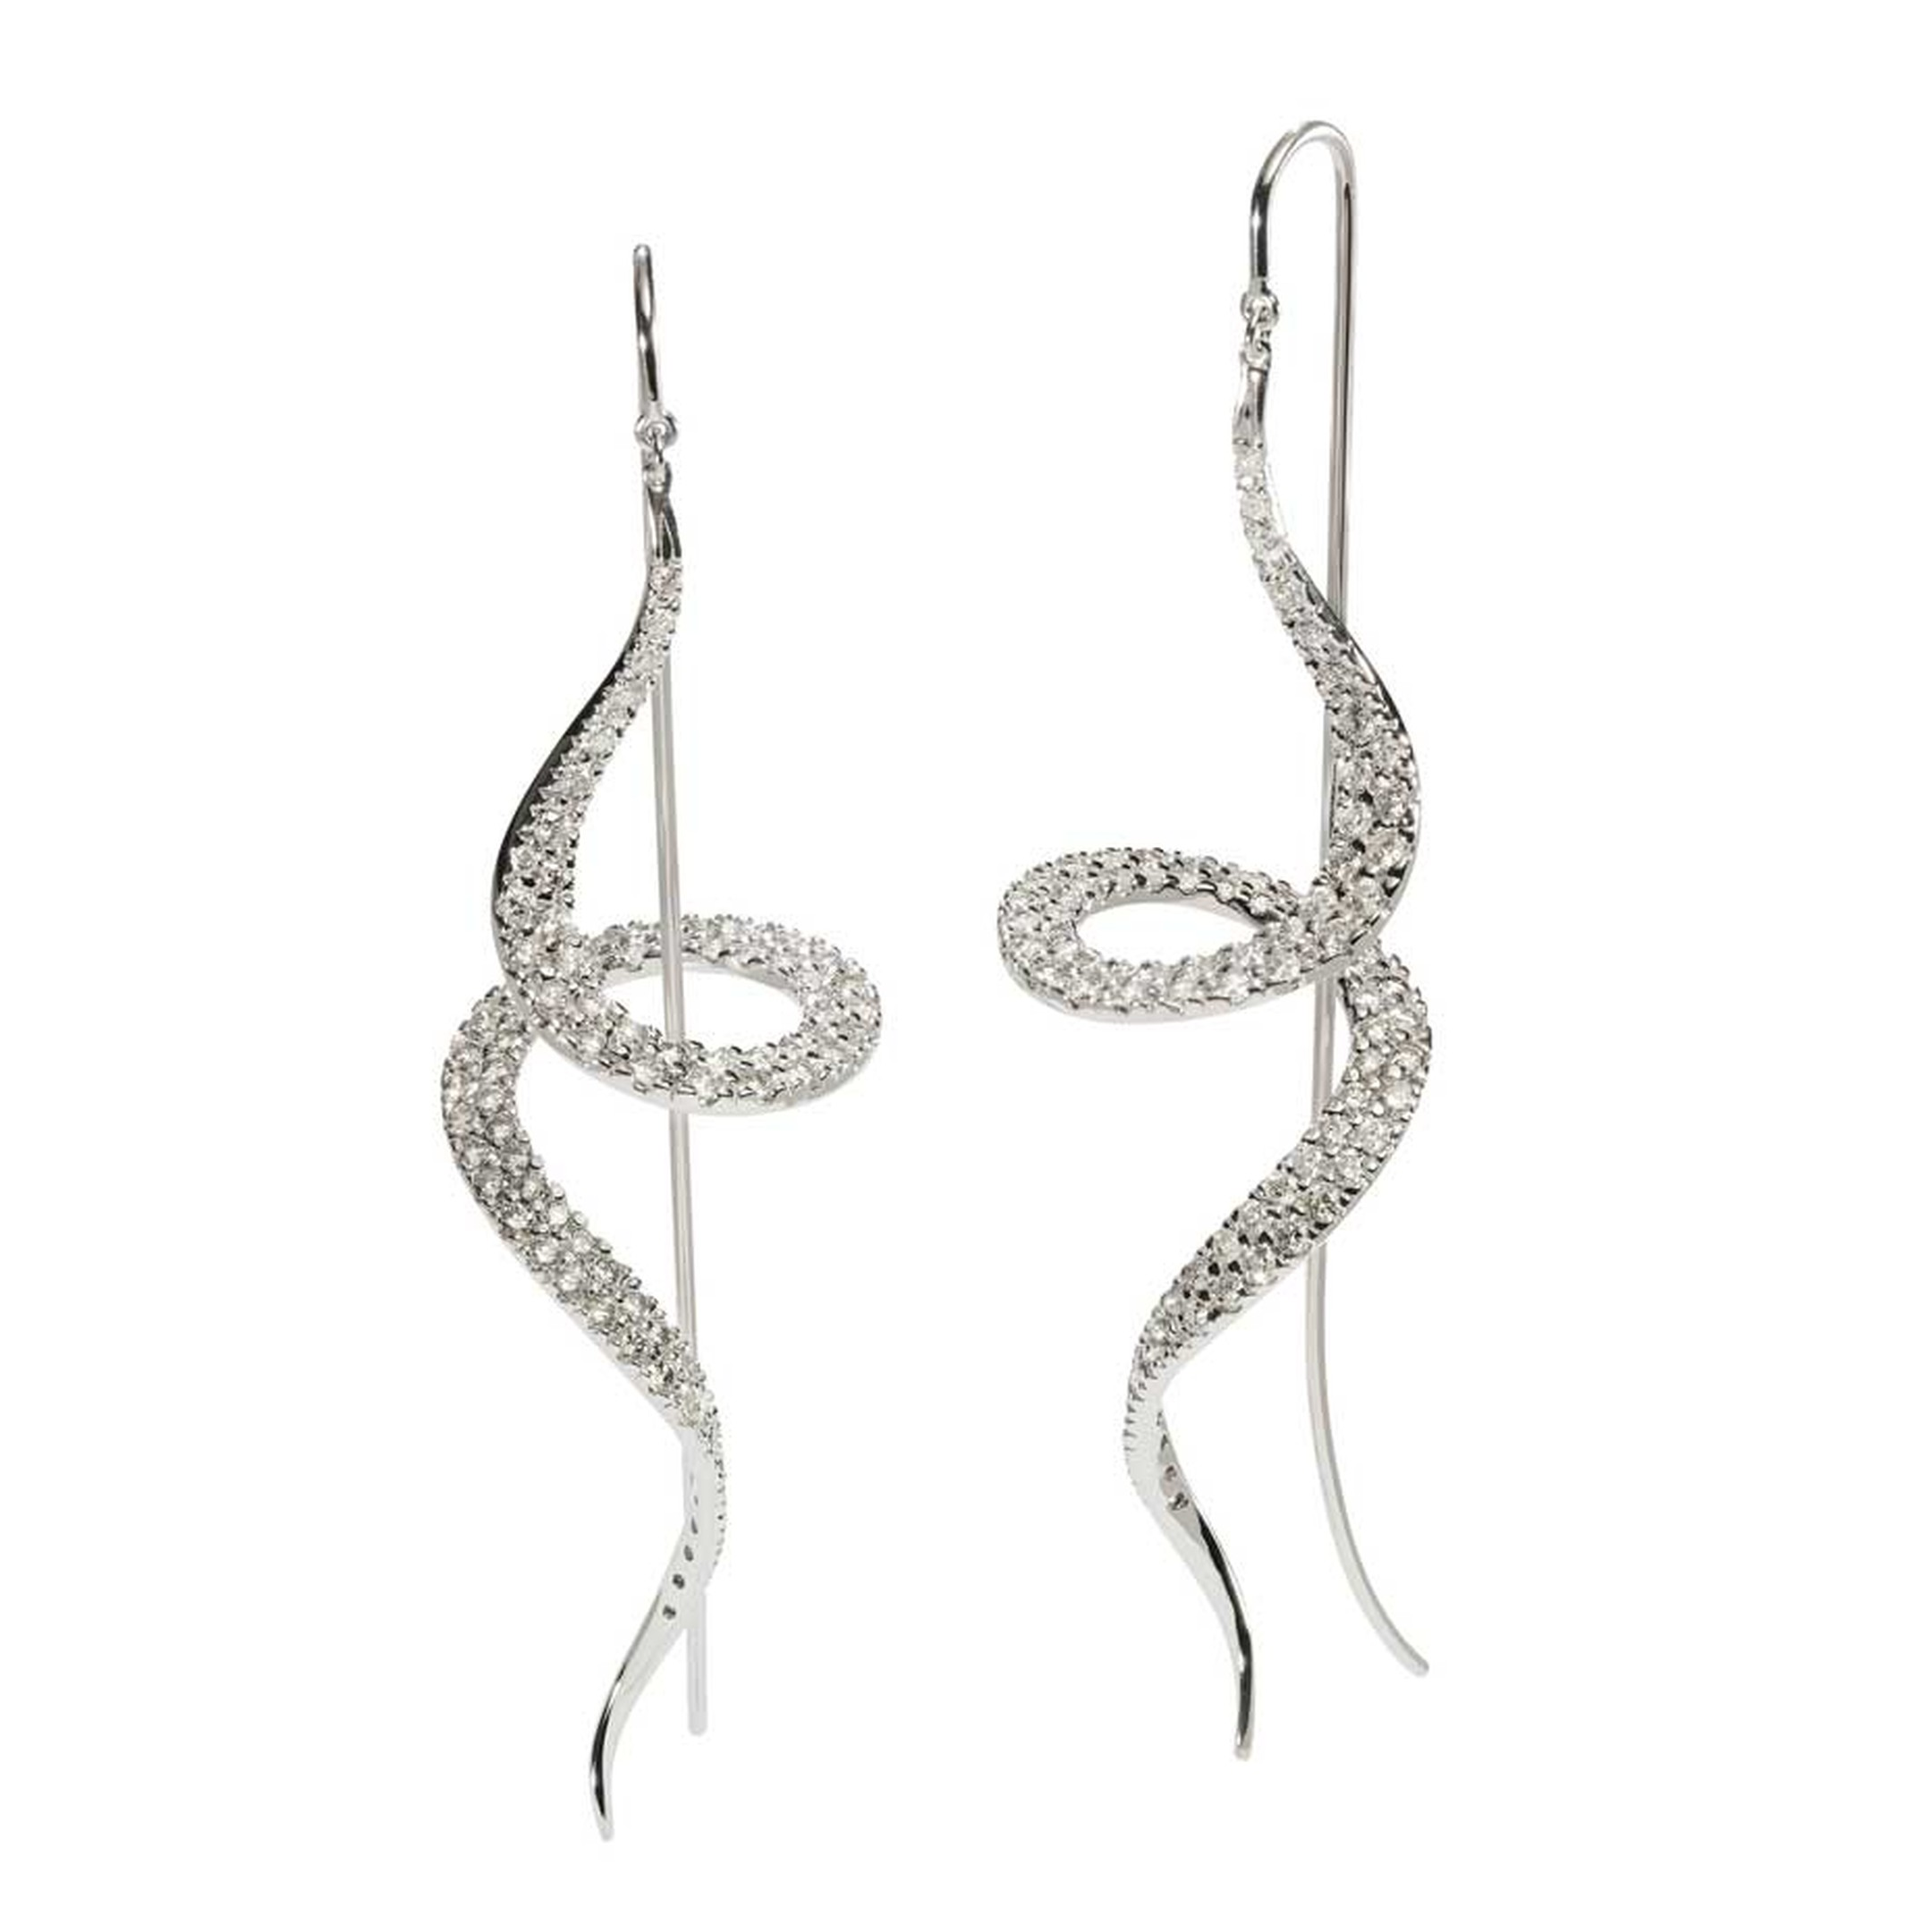 H.Stern's 2014 Oscar Niemeyer collection white gold and diamond earrings display the elegant lines and curves Oscar Niemeyer was so well known for.